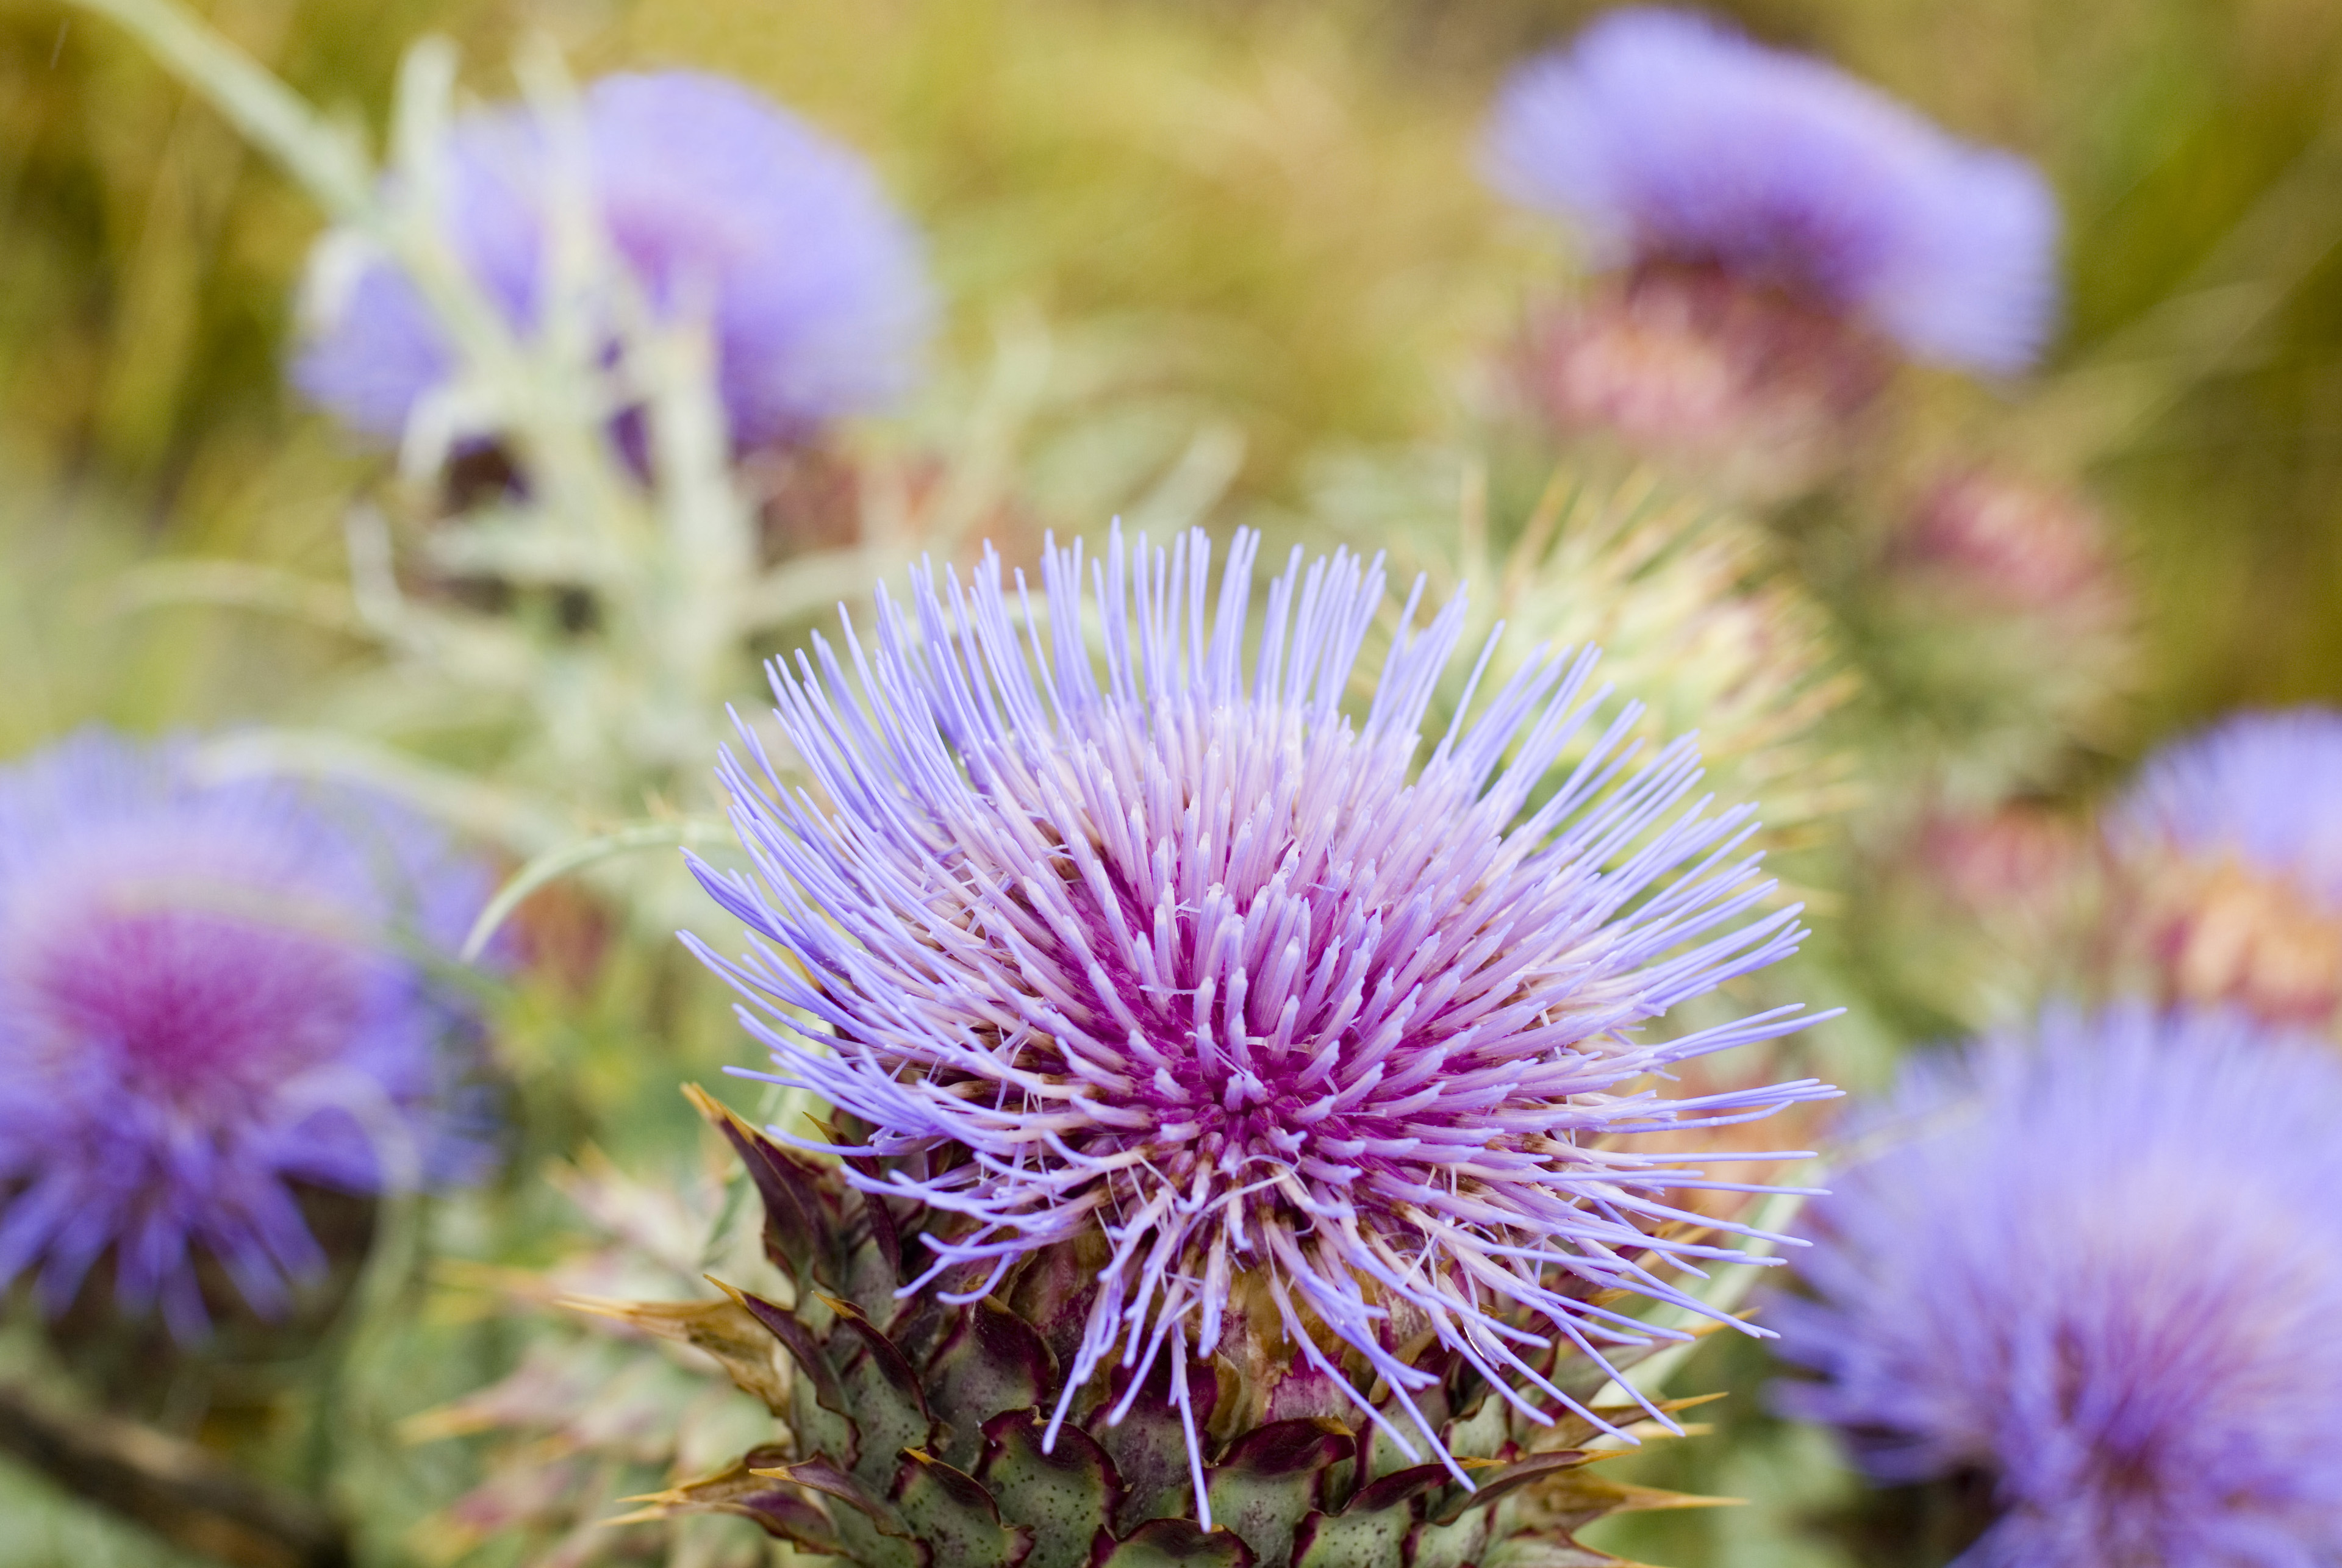 Flowering purple milk thistles growing outdoors in a meadow with close up focus to a single bloom in the foreground, symbolic of Scotland